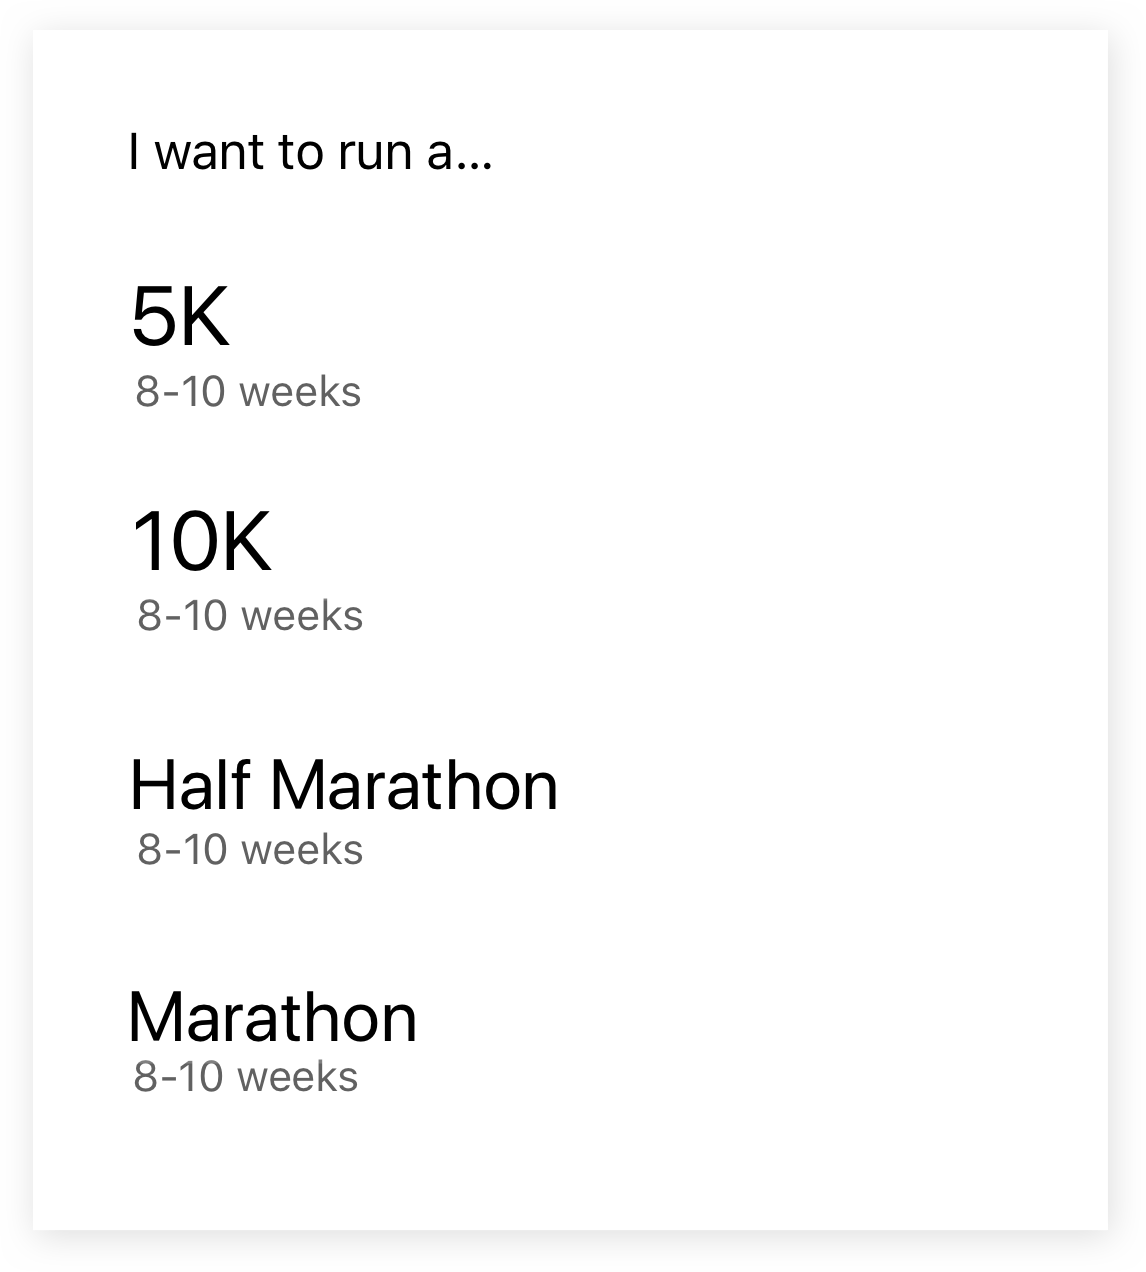 Screenshot from the Runkeeper app of training plan choices for 5k, 10k, Half Marathon and Marathon.